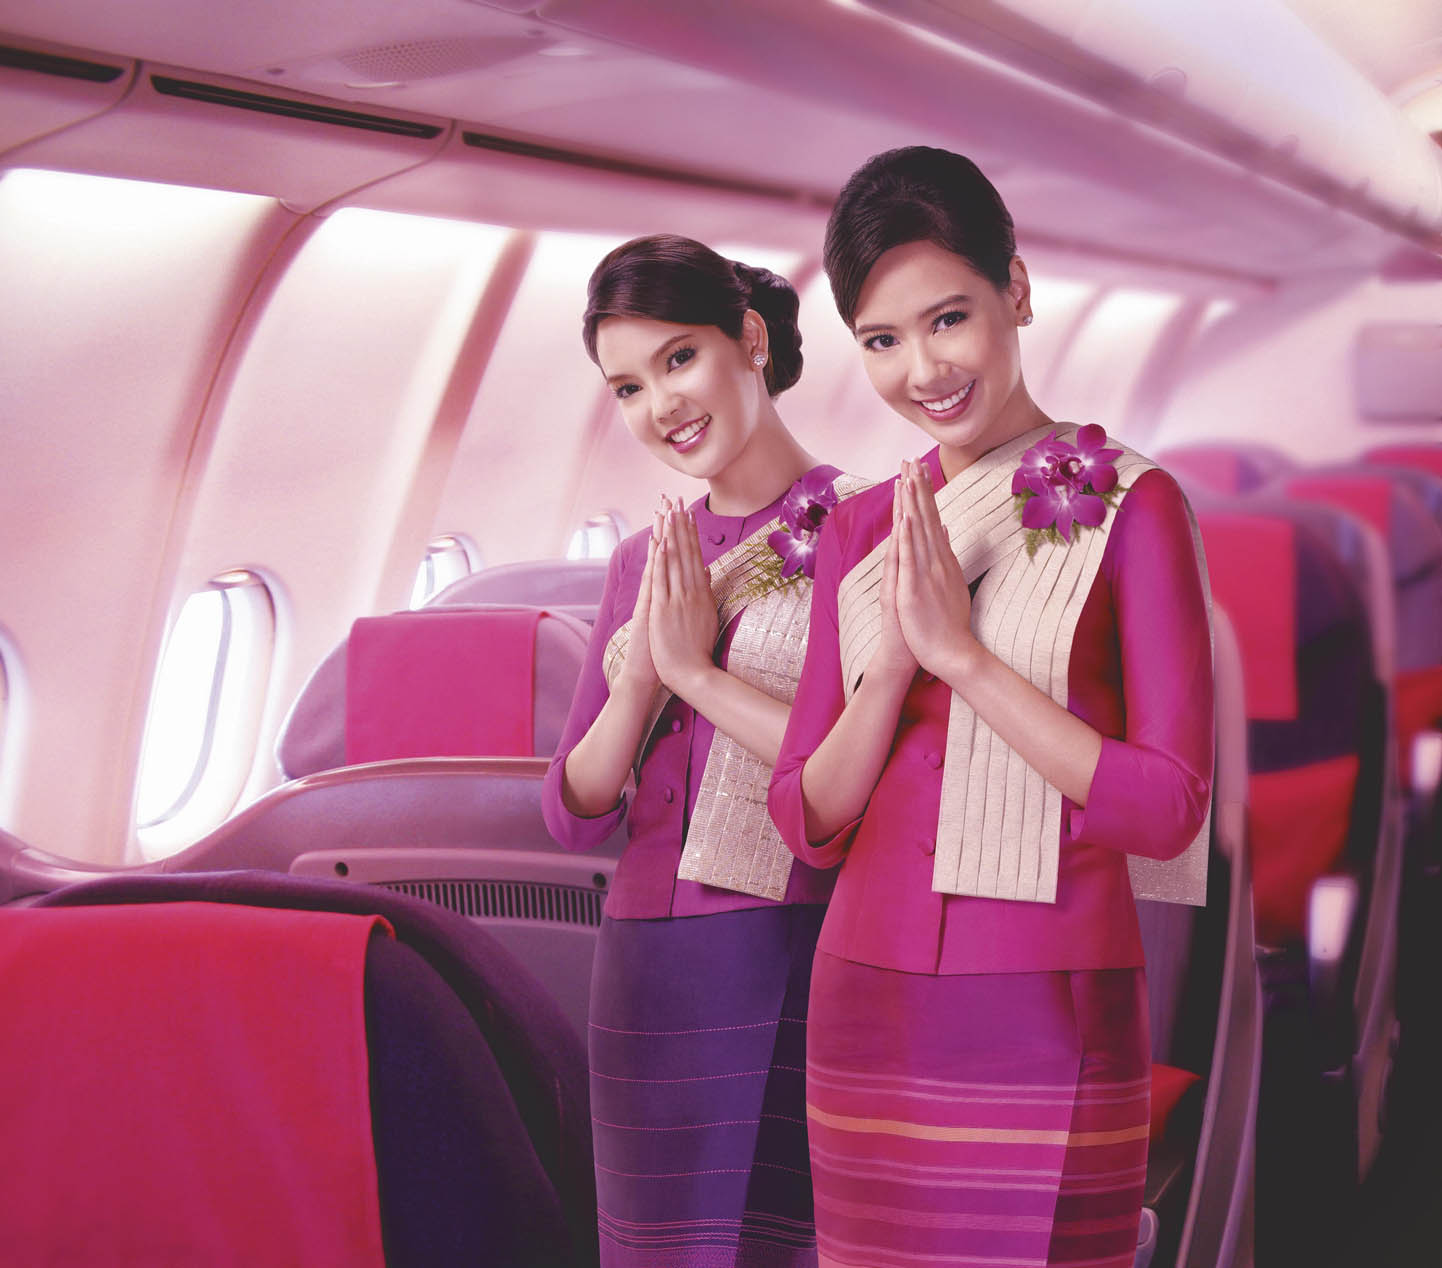 Air Hostess Pictures 31